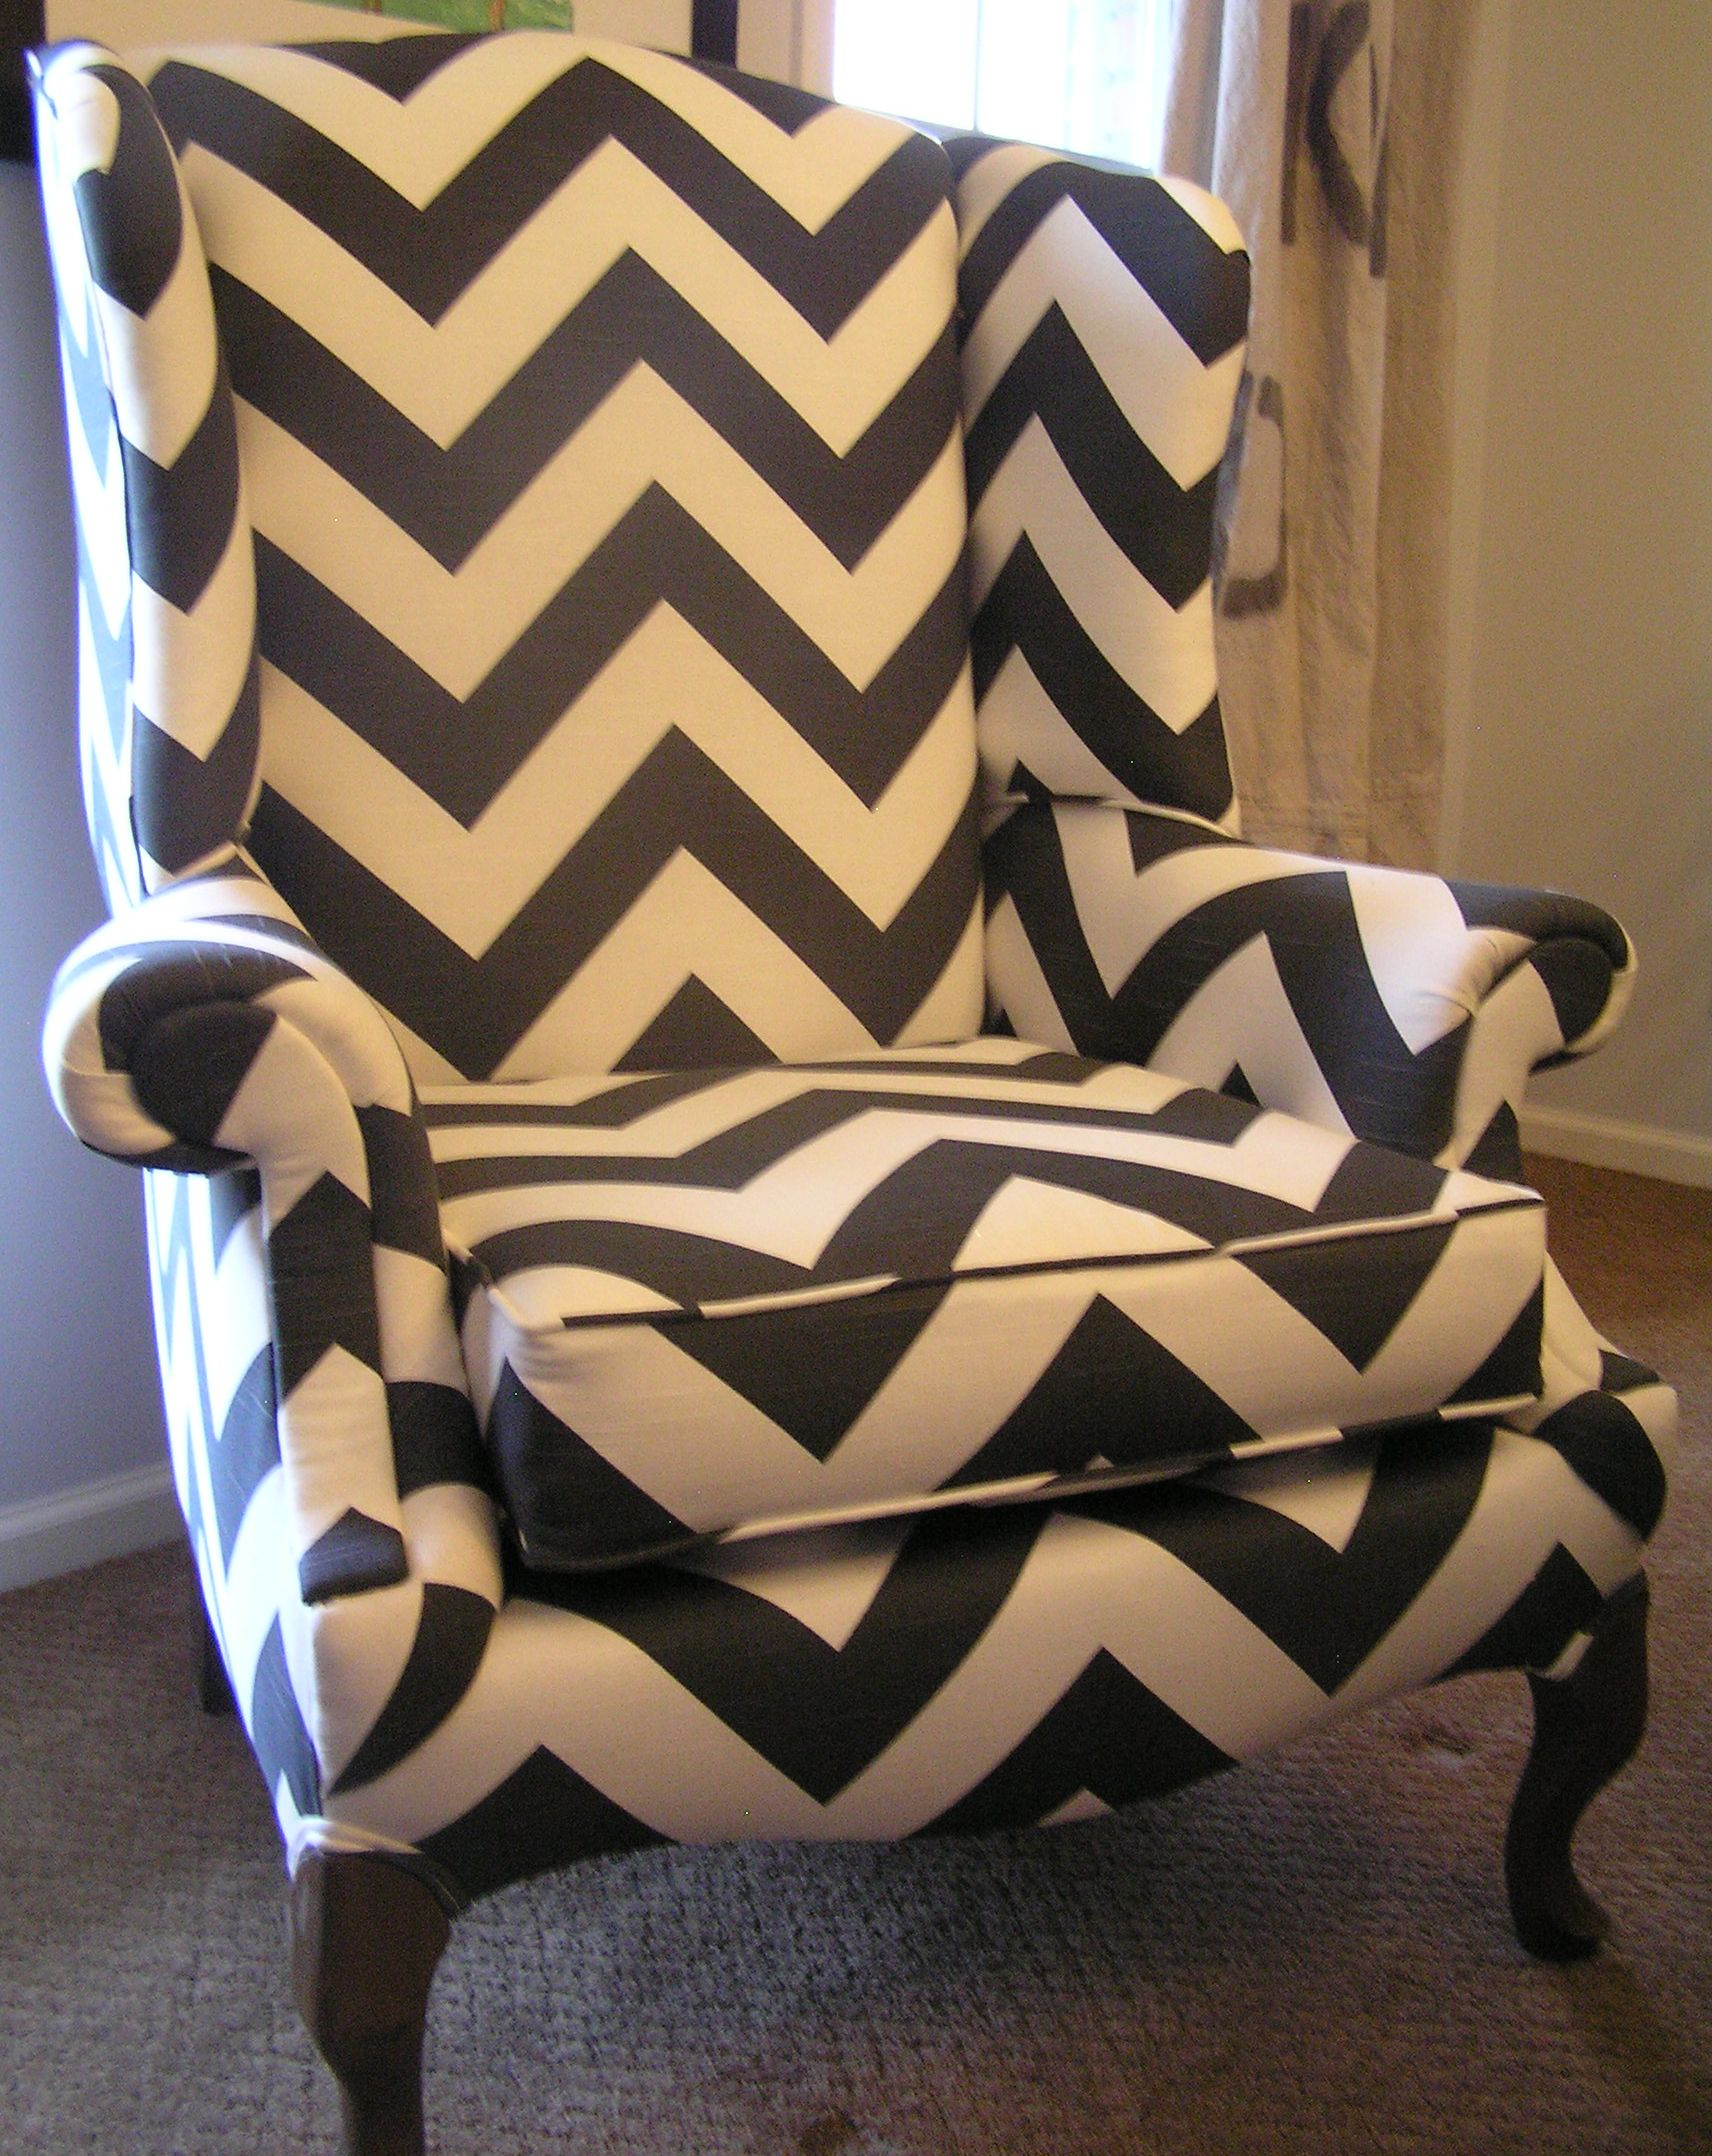 Chevron wing chairs - Premier Prints Charcoal Gray Chevron Fabric On Upcycled Goodwill Wingback Chairs